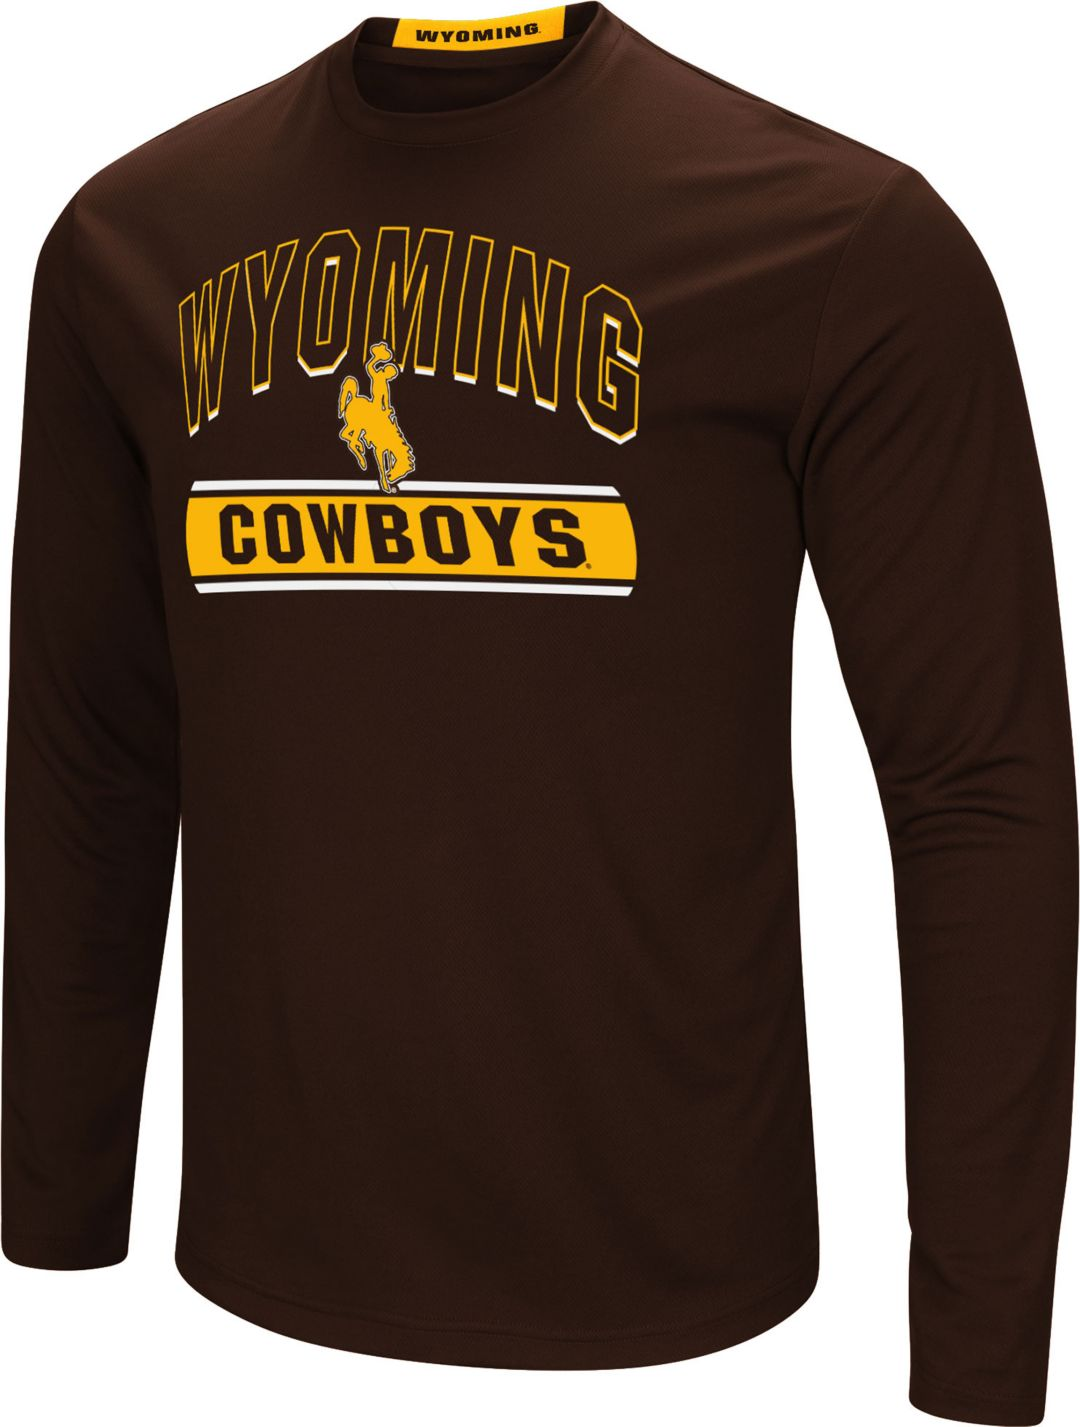 best website 580b7 f7864 Colosseum Men's Wyoming Cowboys Brown Ganges Long Sleeve T-Shirt